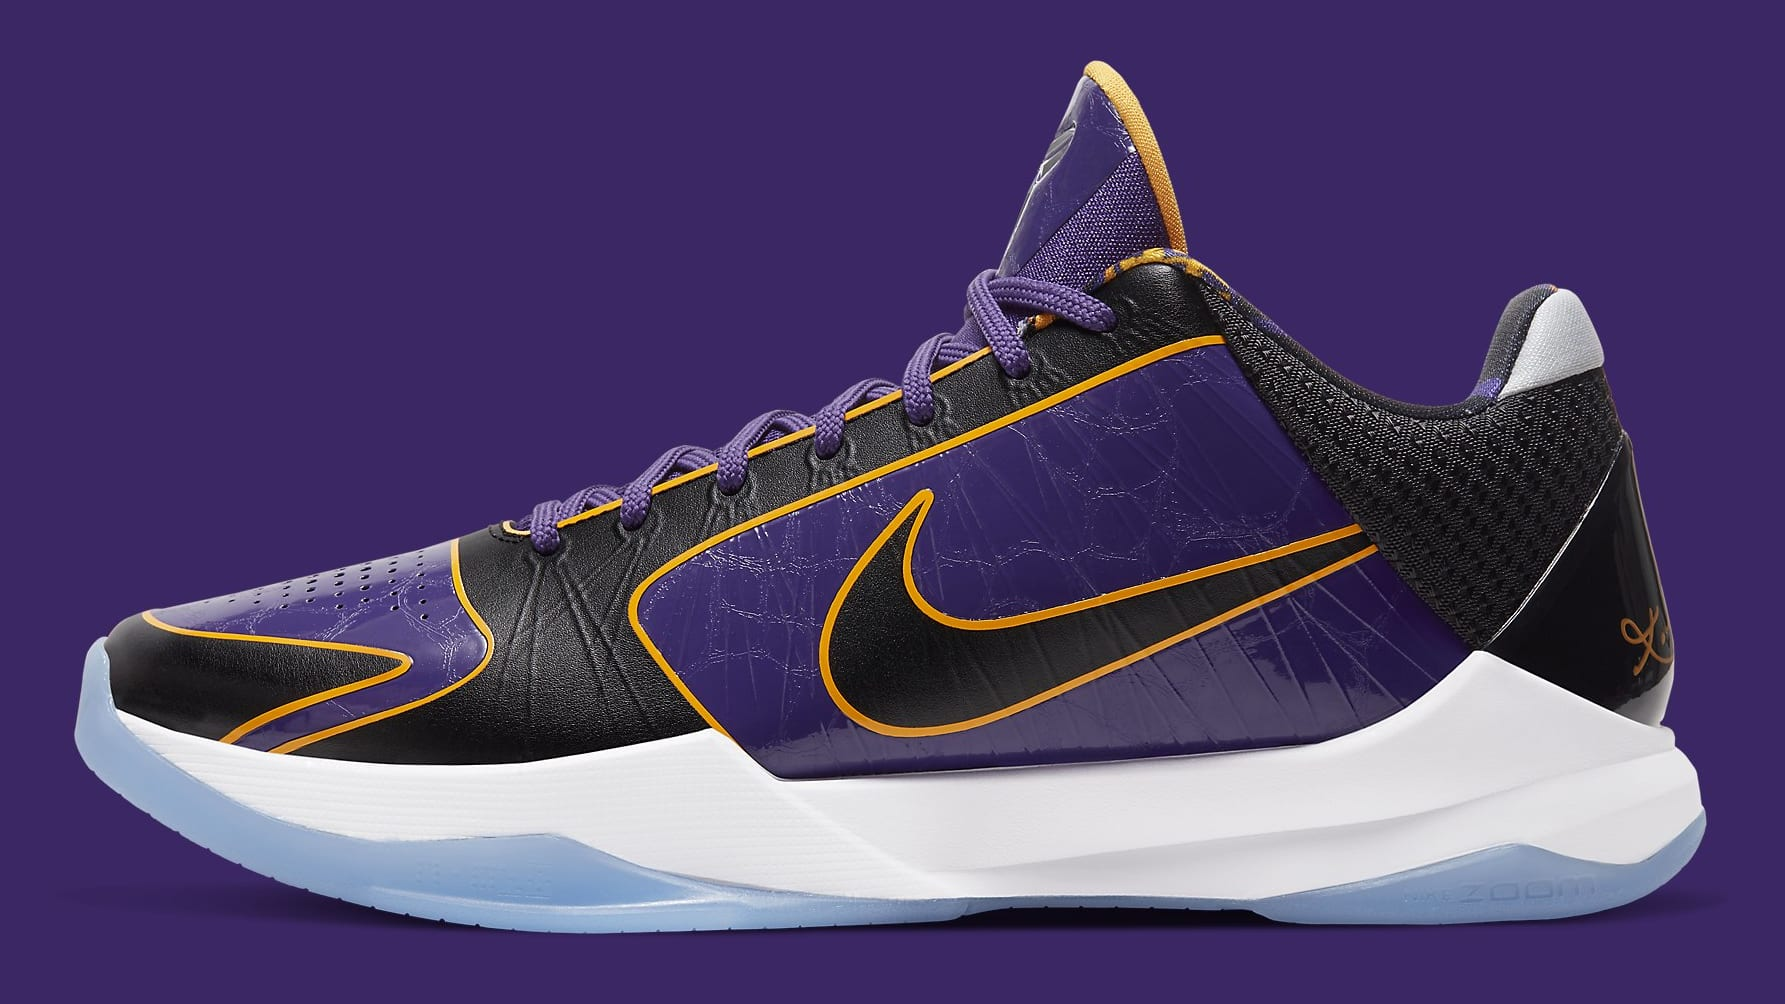 Nike Kobe 5 Protro Lakers Release Date CD4991-500 Profile